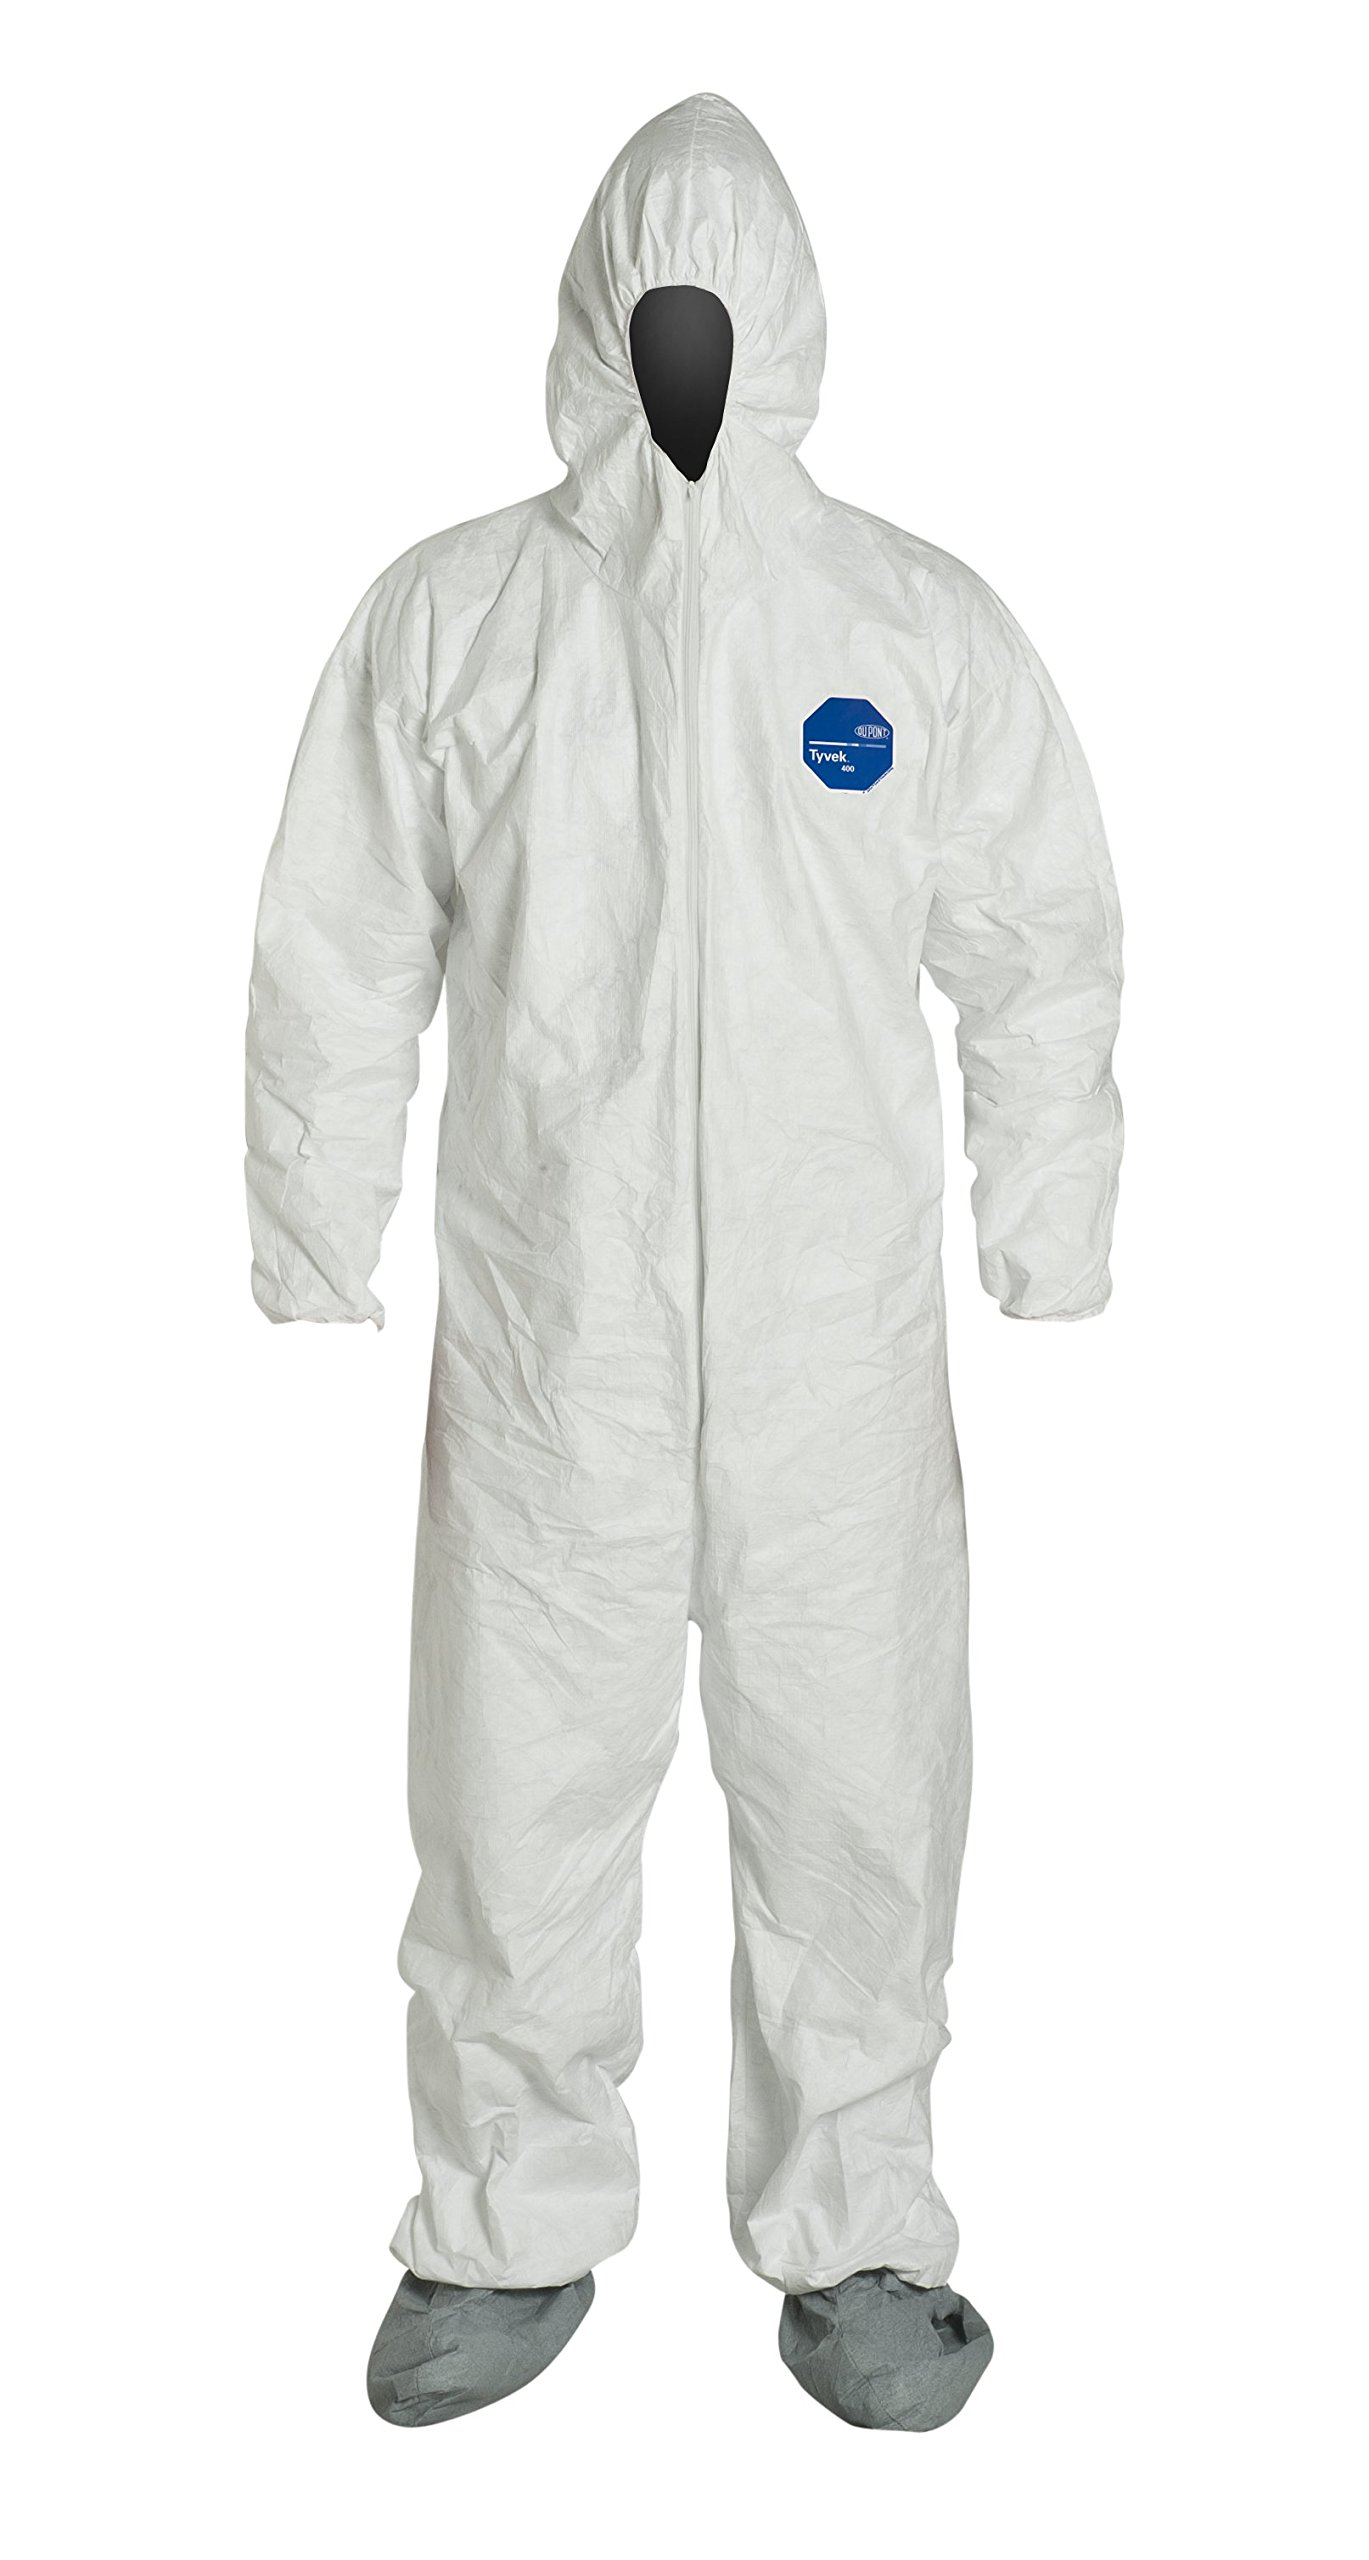 Tyvek Hooded Coveralls - 2XL- 25PK by DuPont